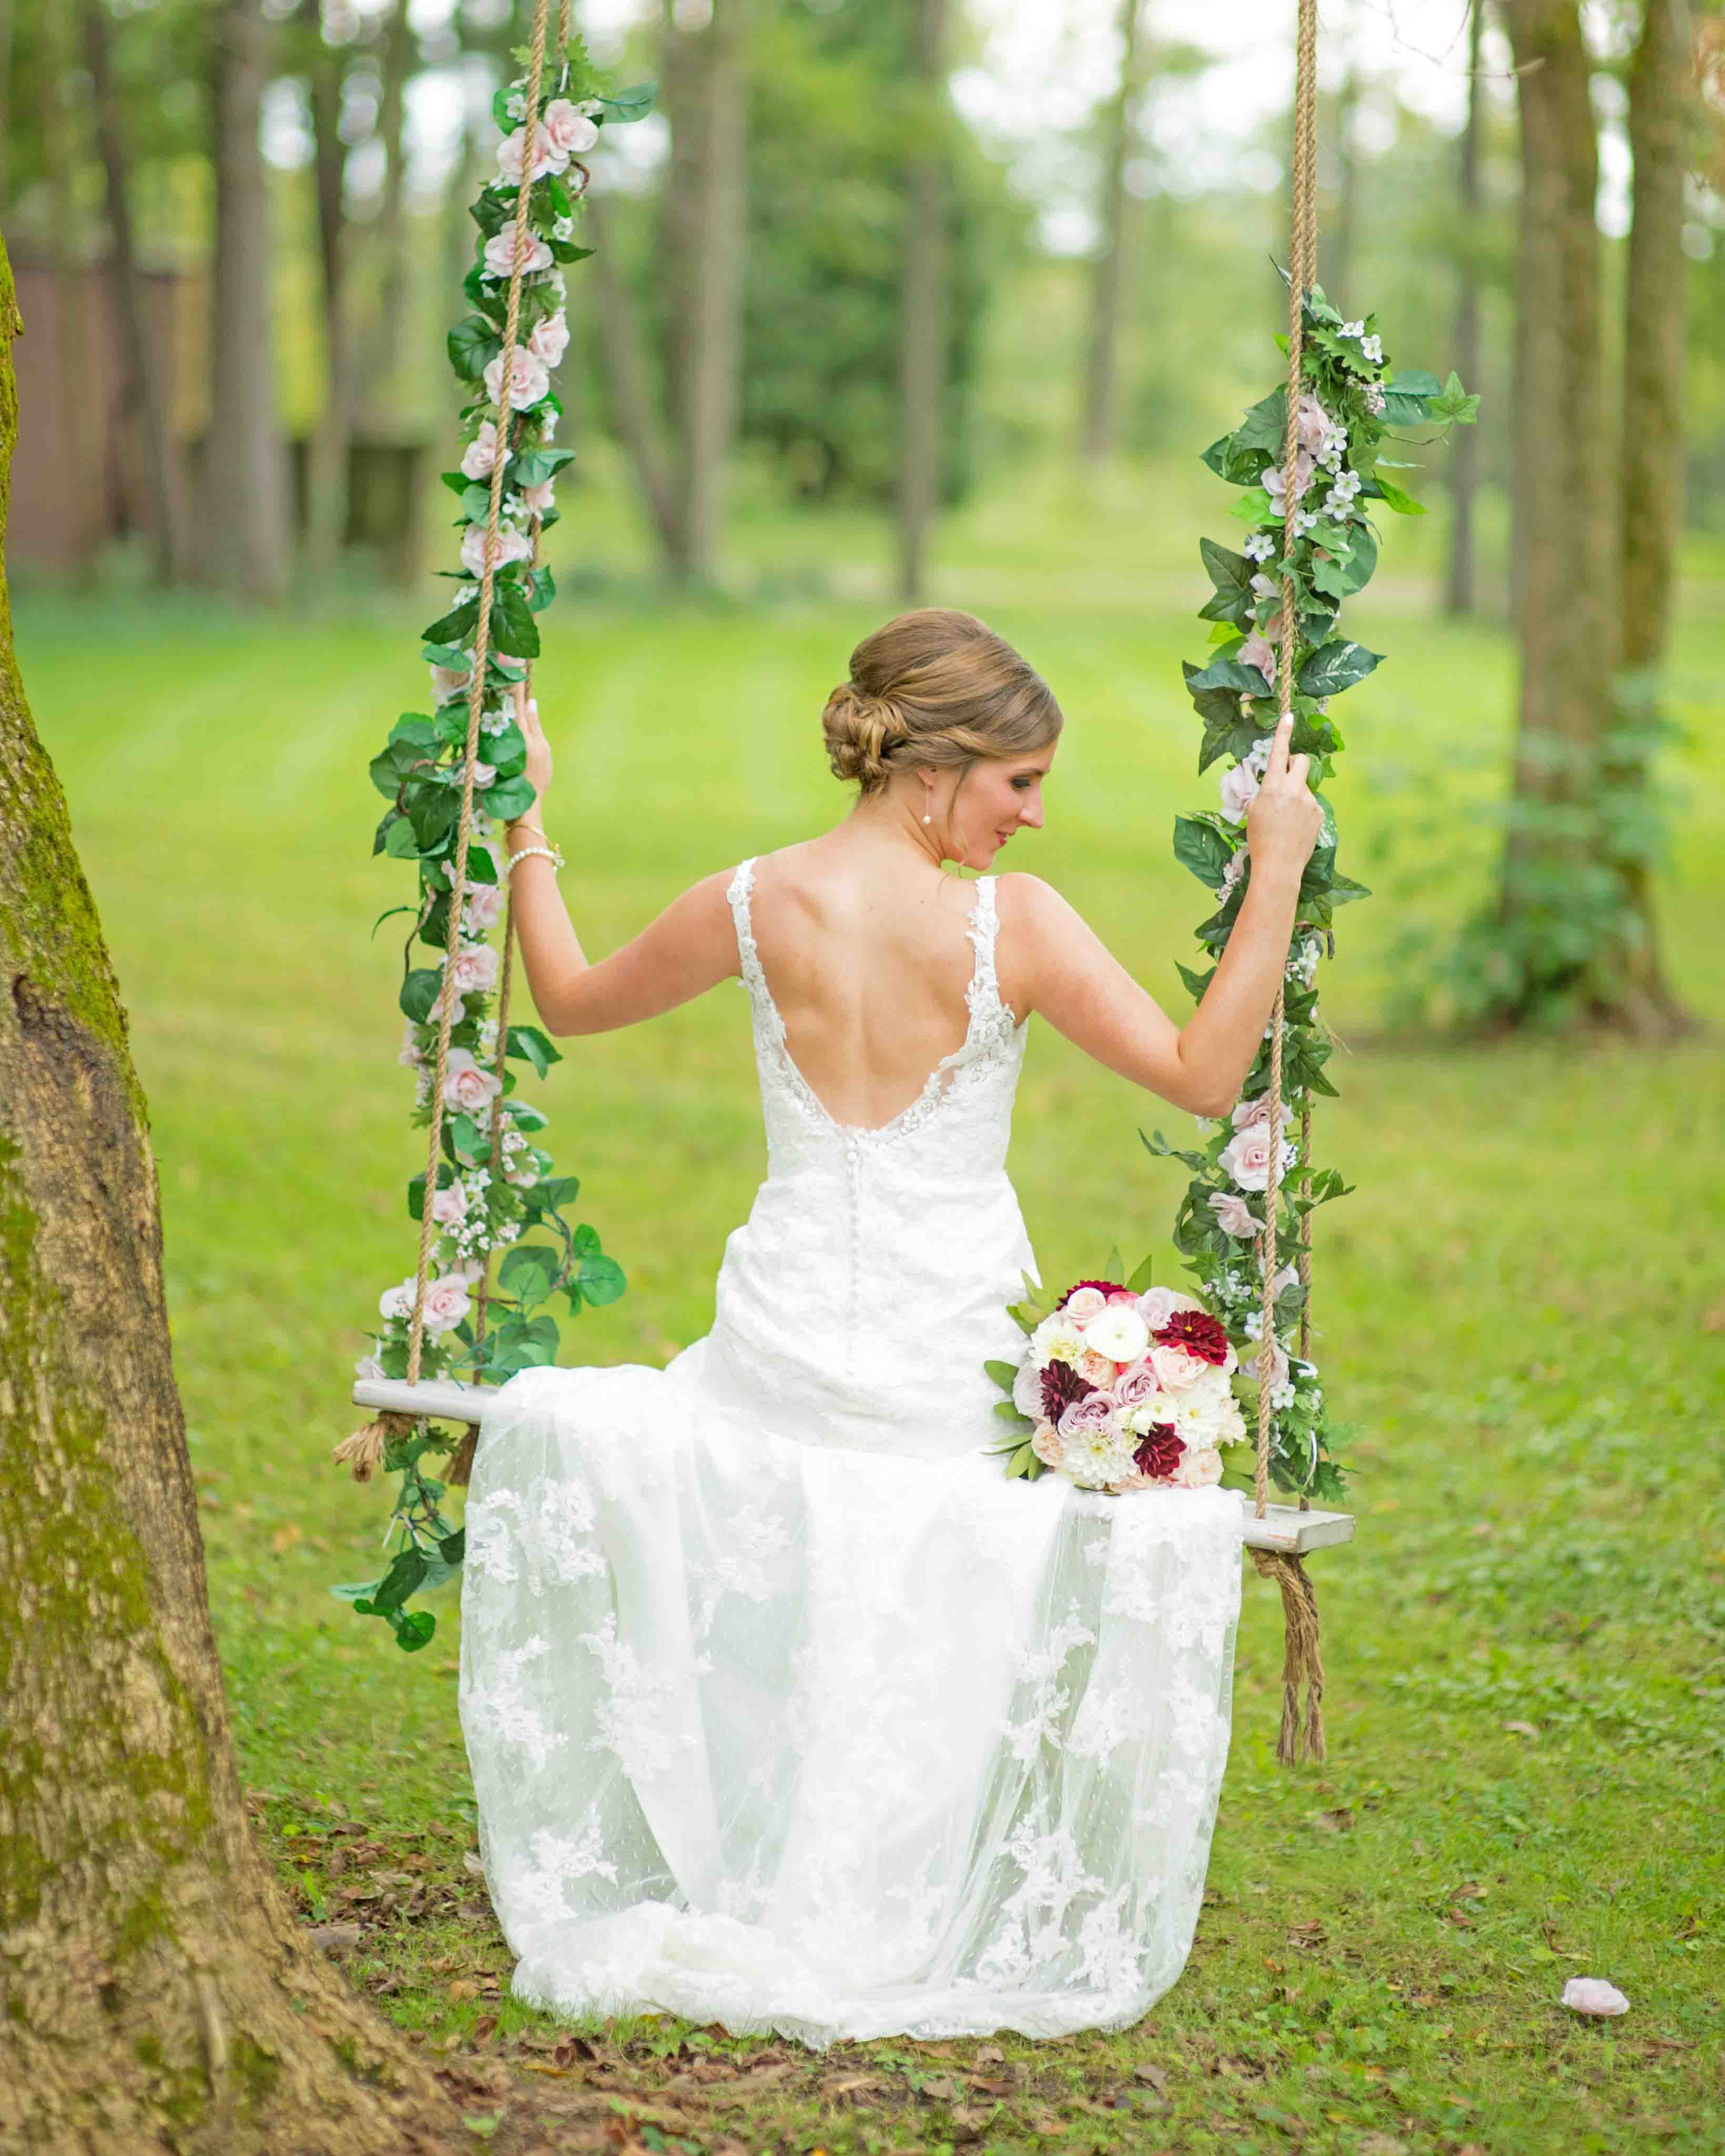 Outdoor Wedding Venue the Swing